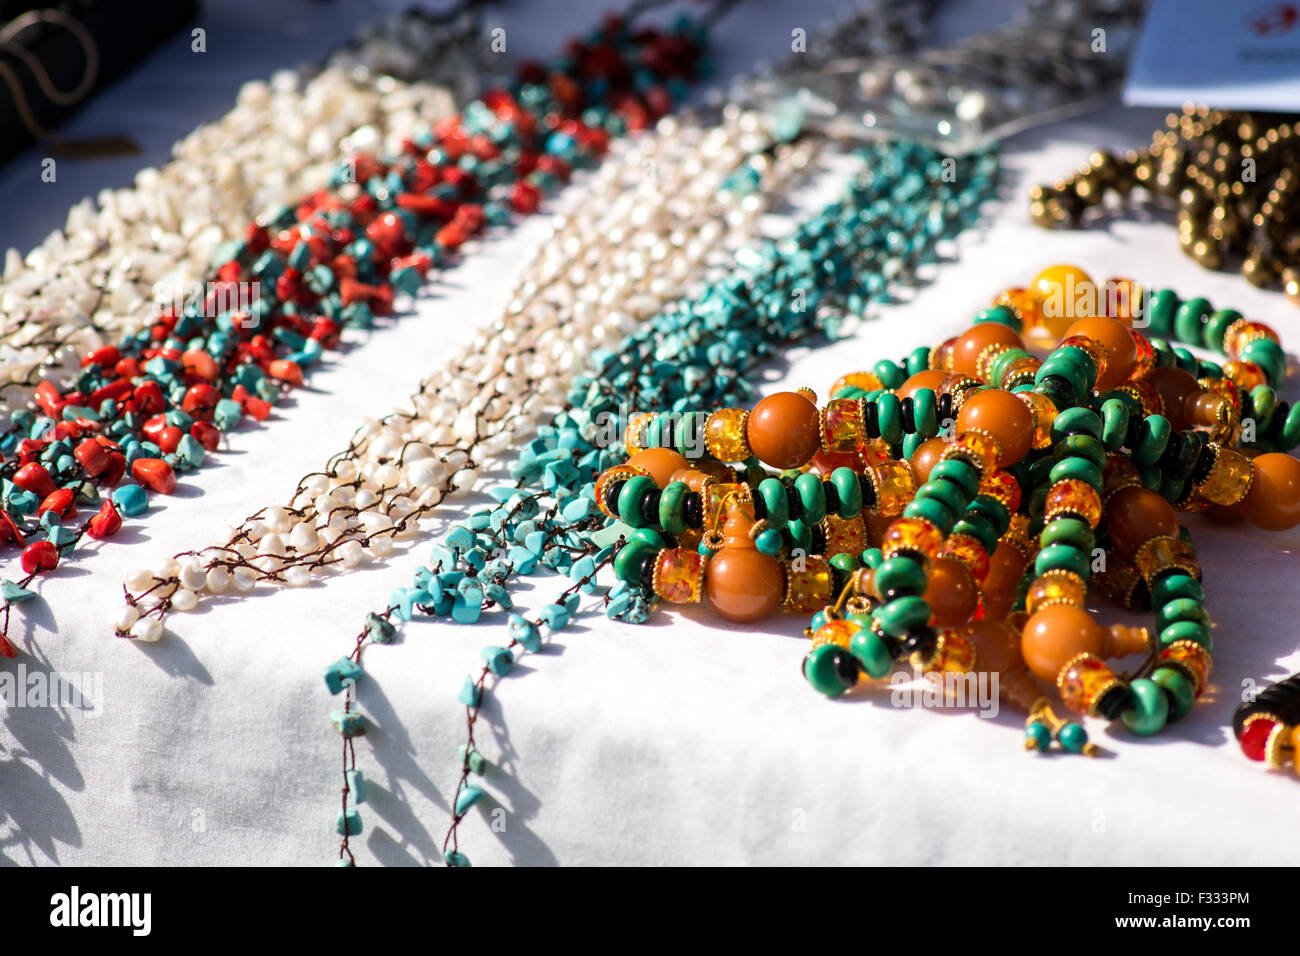 Examples of jewelry from Tibet. - Stock Image